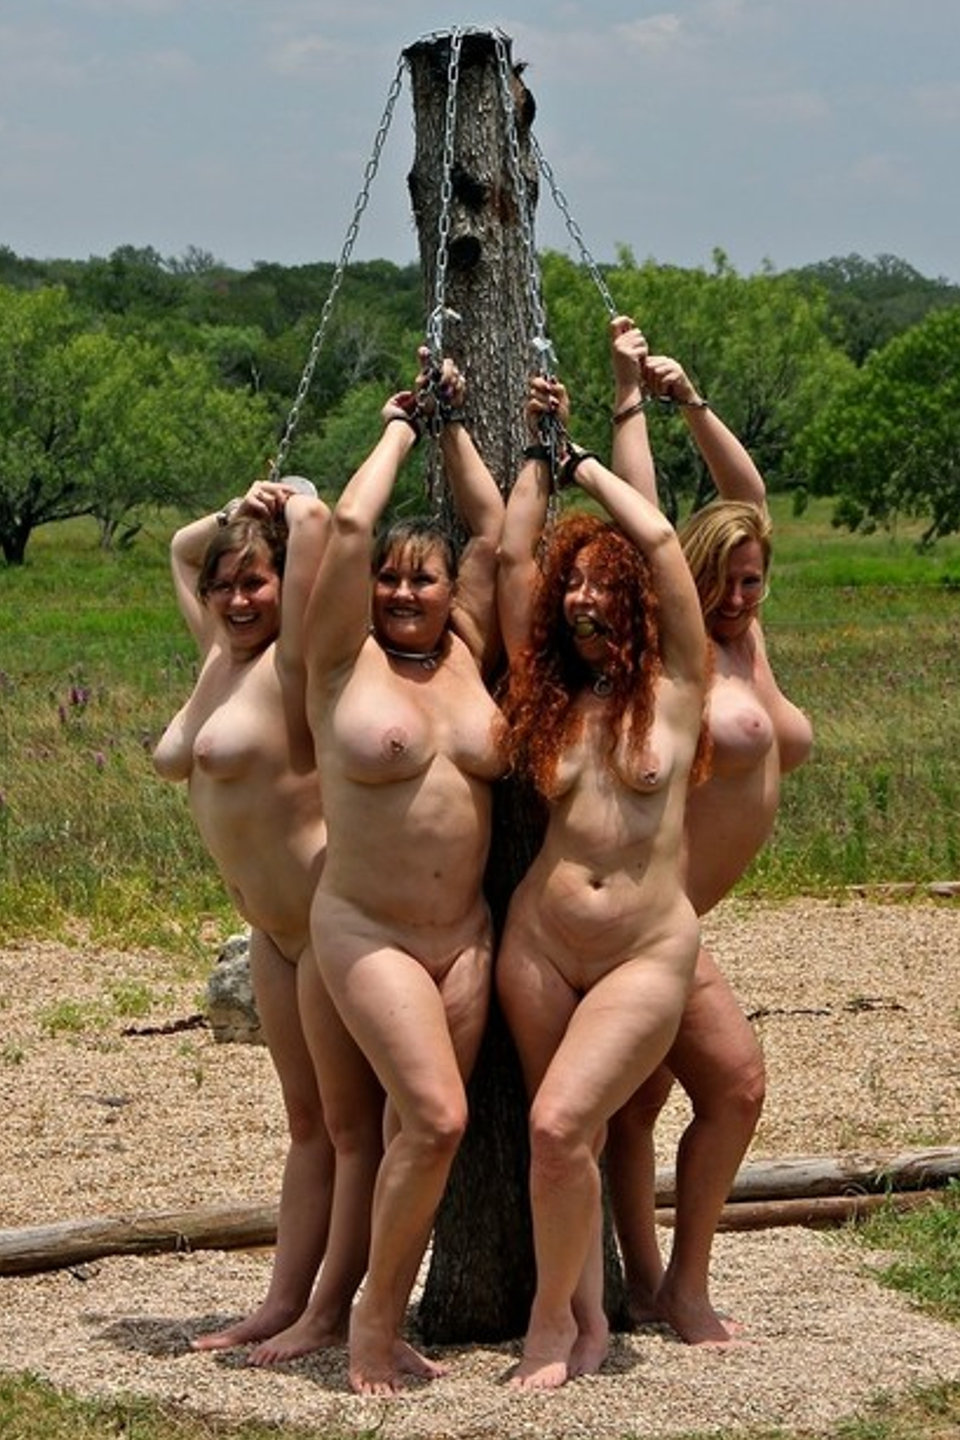 Nude women as slaves consider, that